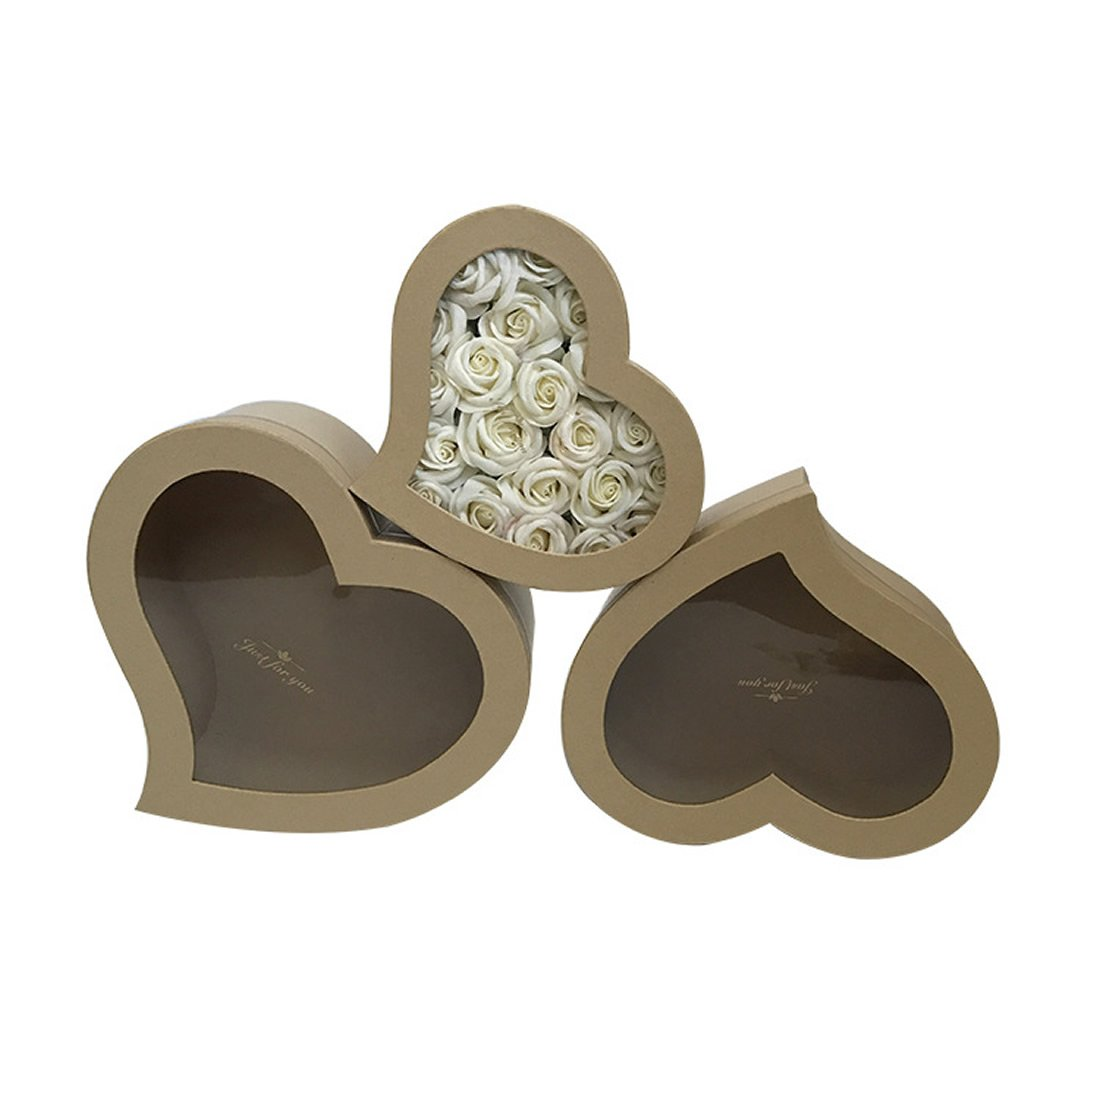 3pcs/Set Valentine's Day Gift Heart-Shape PVC Transparent Window flowrist Packing Flowers Gift Box,Weddiing Party Decoration Box (Kraft Paper Color)